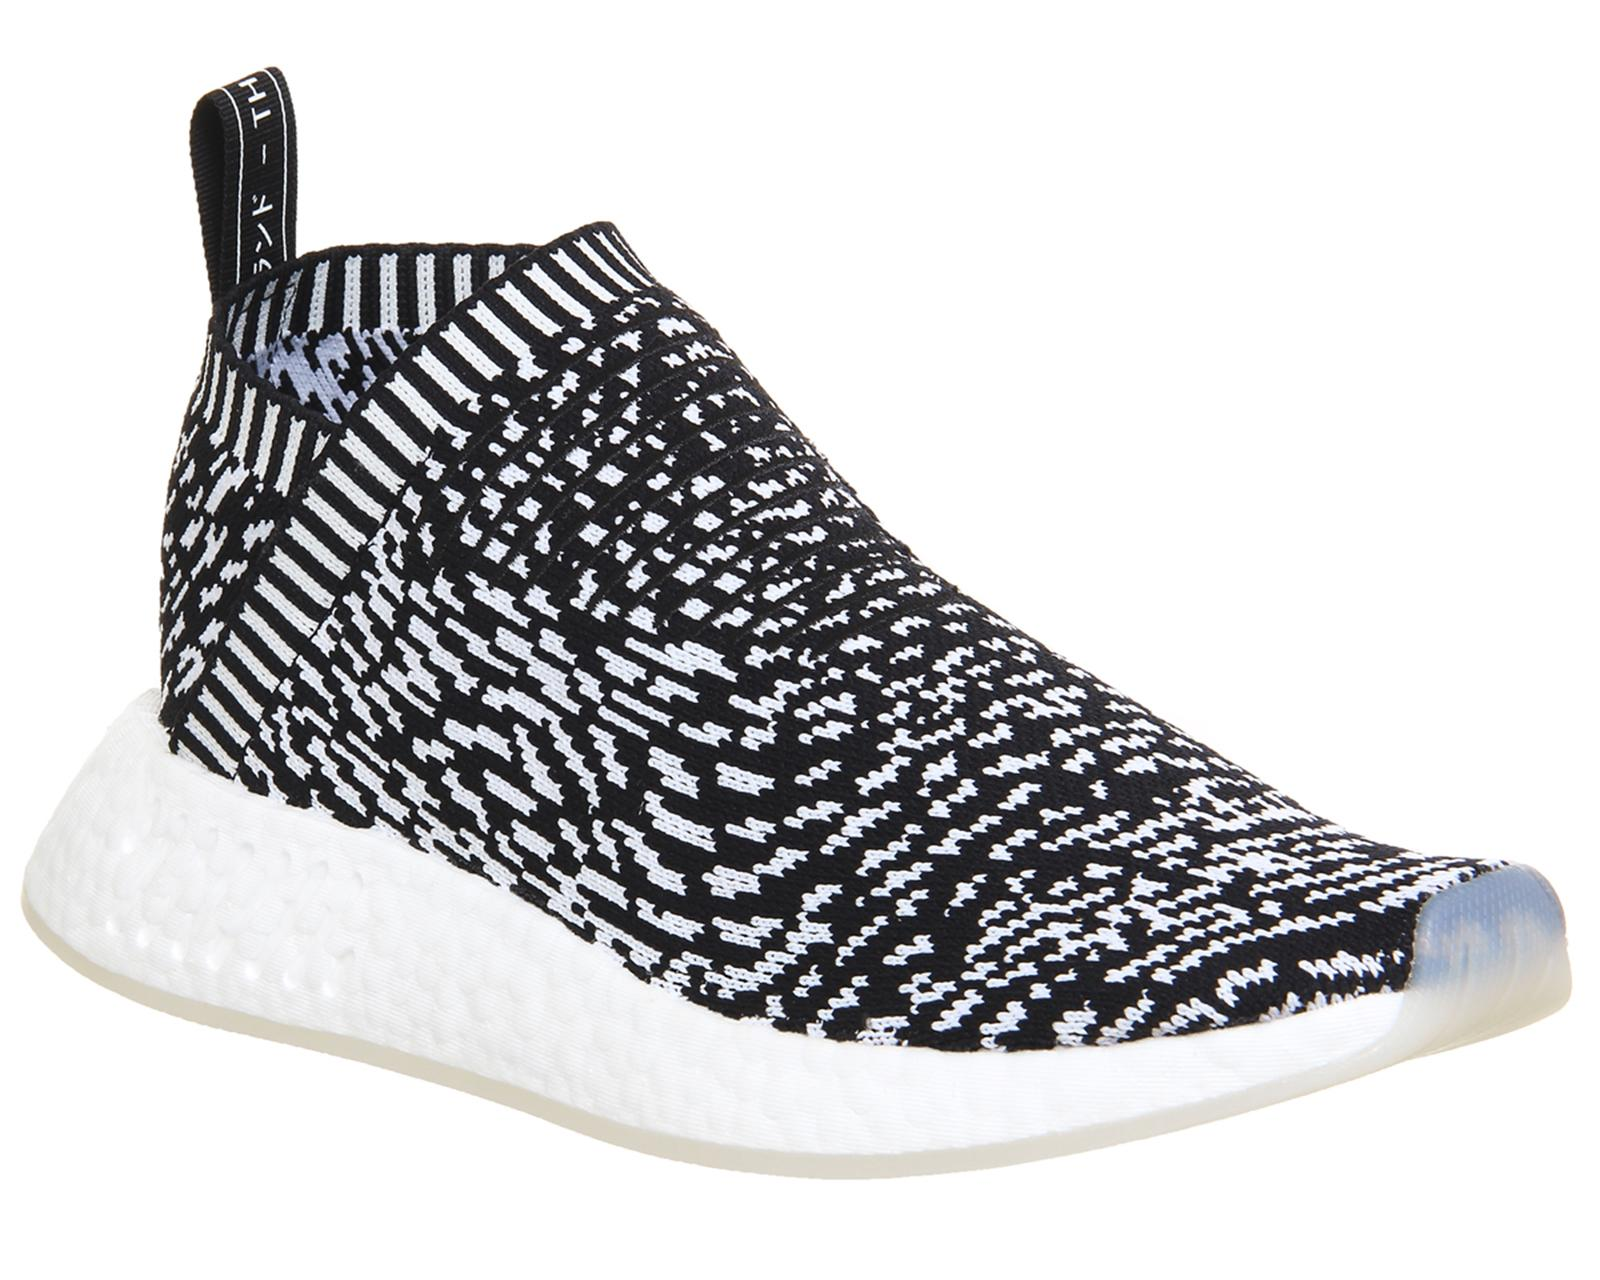 96b84731aa9f3 adidas Nmd Cs2 Pk in Black for Men - Lyst